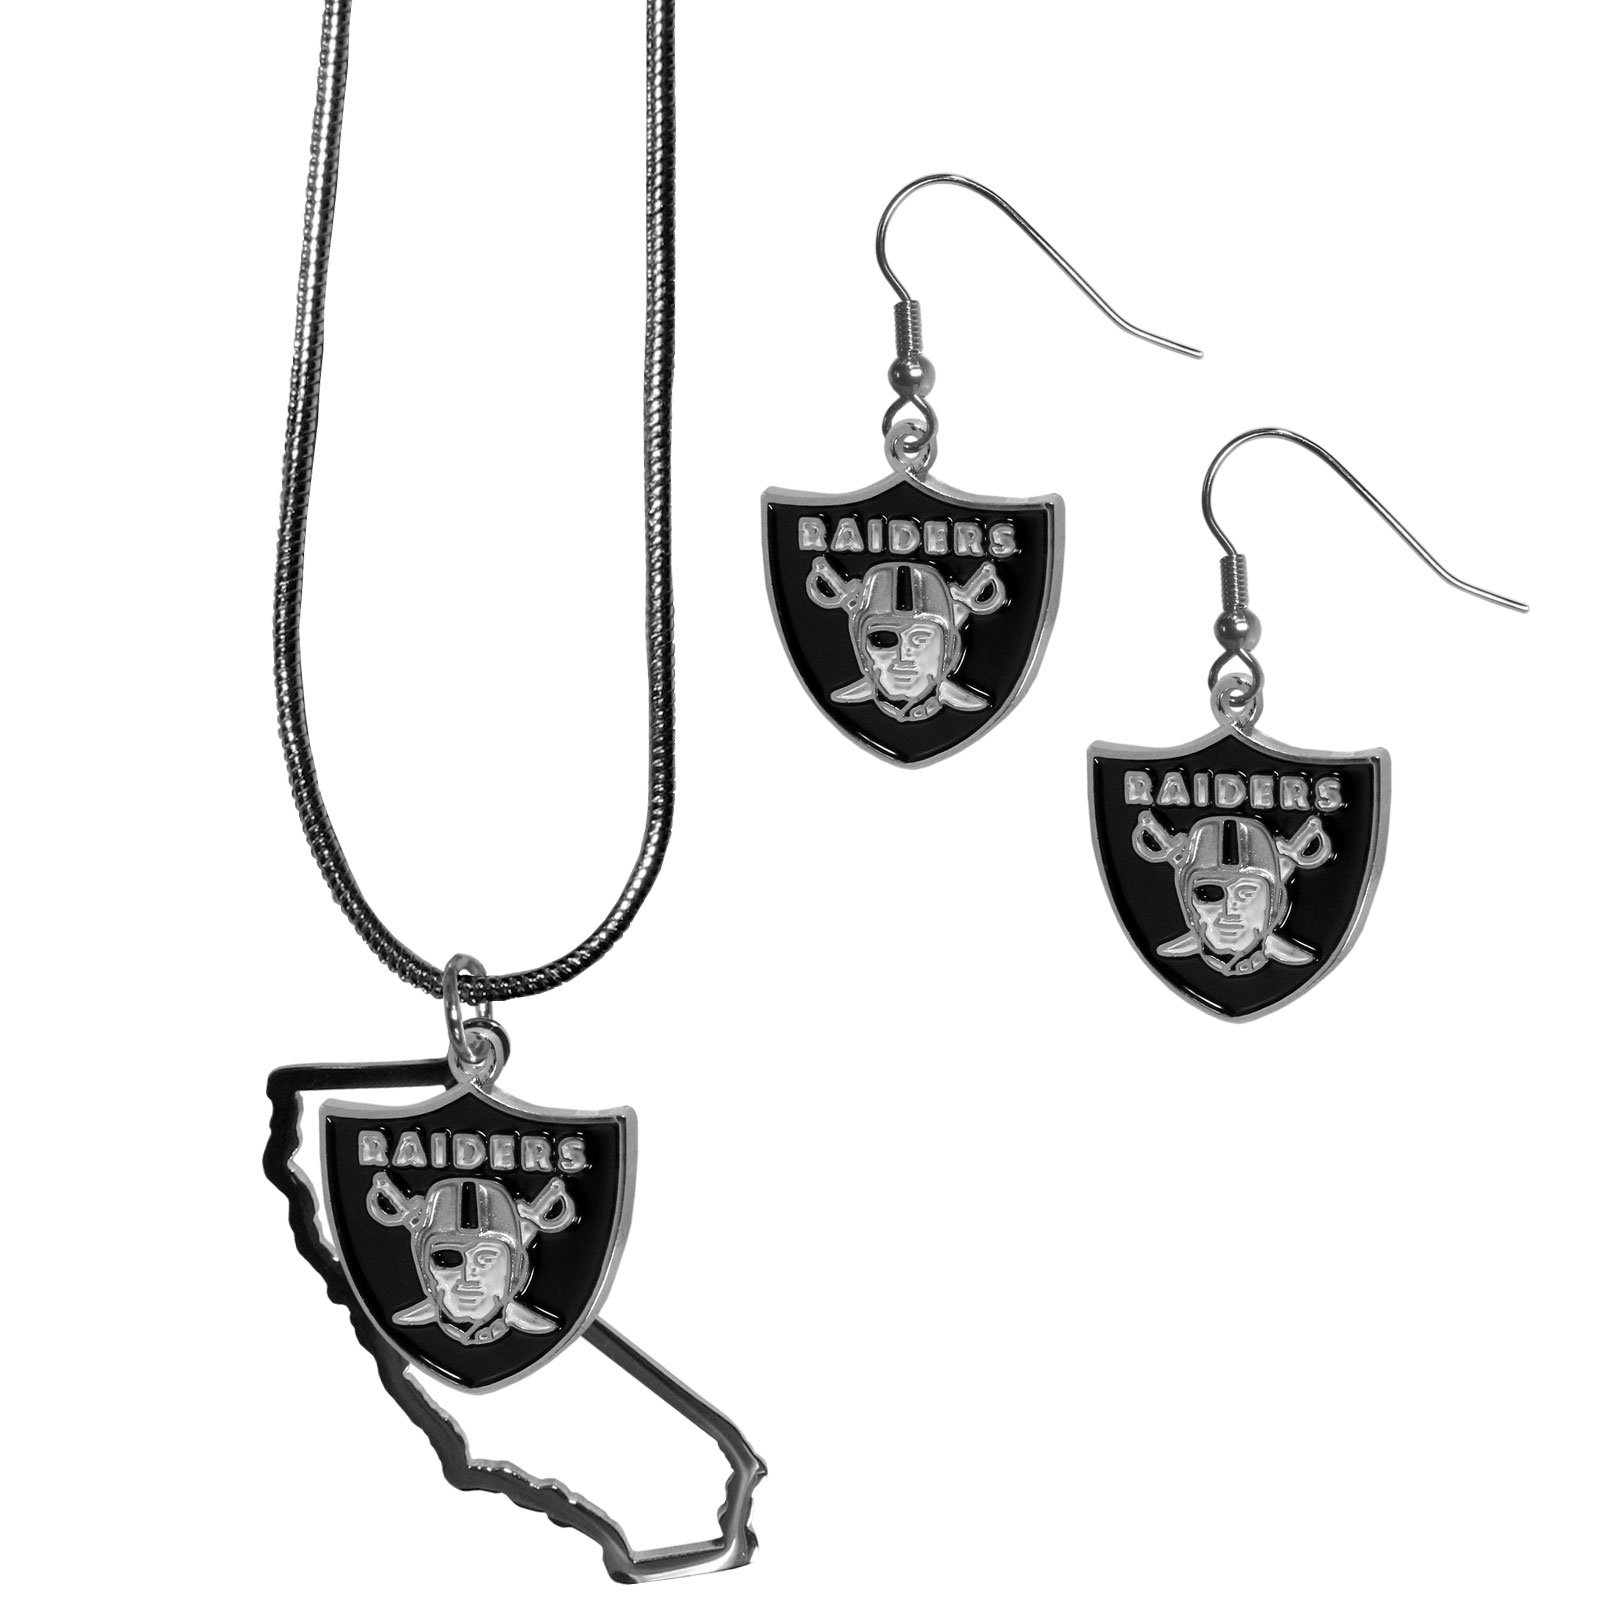 Oakland Raiders Dangle Earrings and State Necklace Set - Get in on the trend! State themes are a trend that just keeps getting more popular and this jewelry set takes the state style and give it a sporty twist with a Oakland Raiders necklace that features an Arizona state outline charm paired with a beautiful team charm and matching team charm dangle earrings. The earrings feature hypoallergenic fishhook posts that are nickel free.